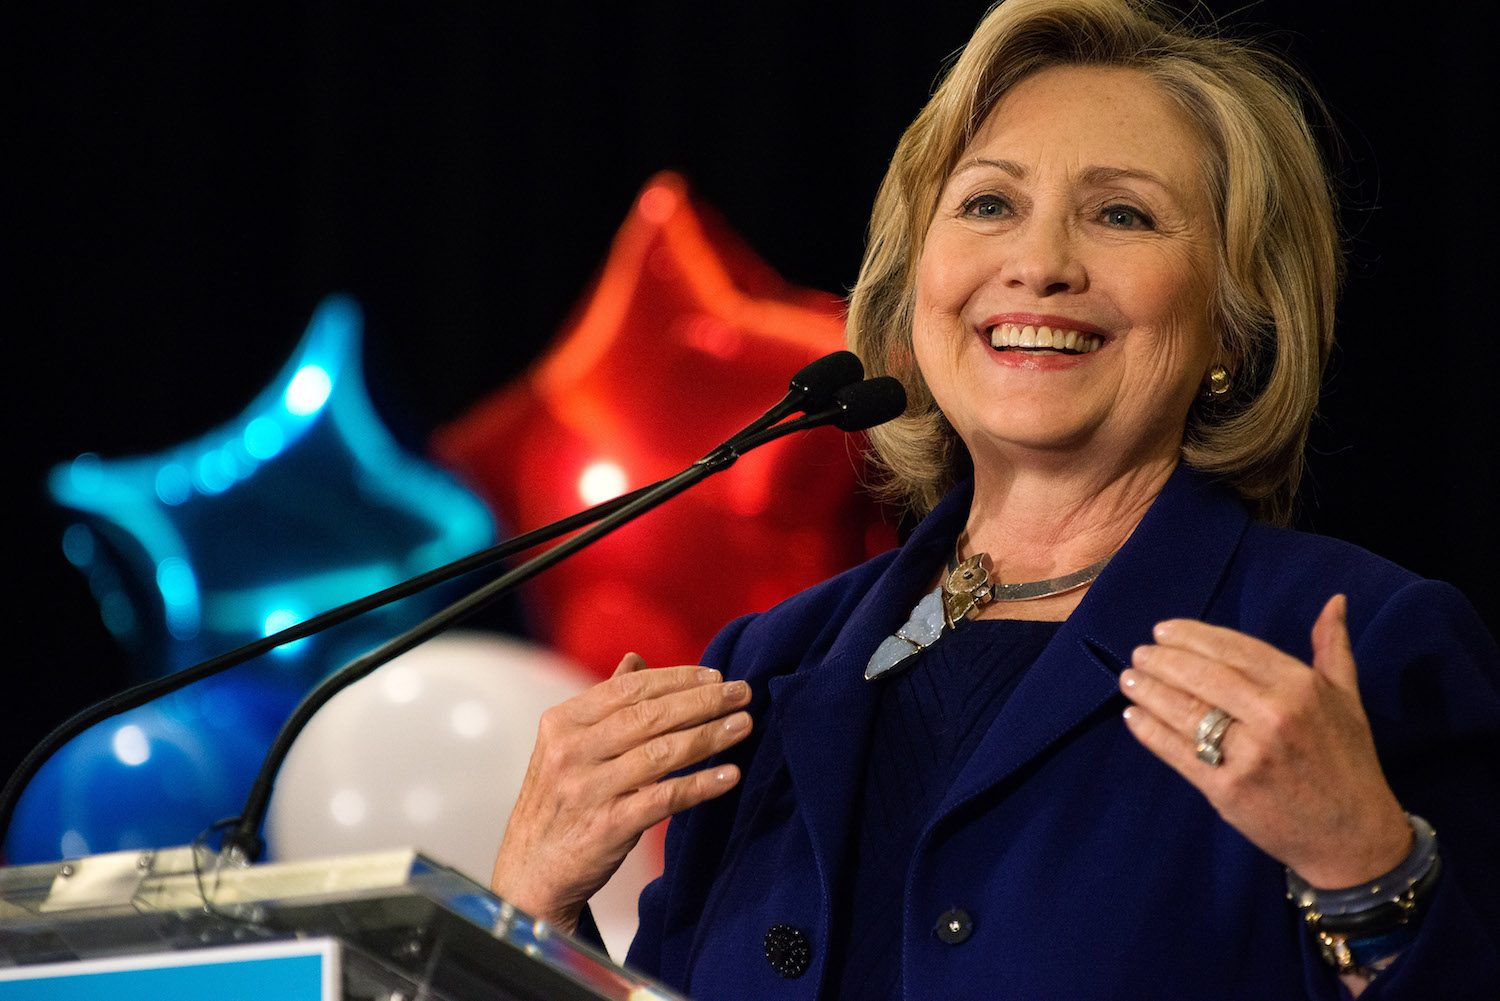 Hillary Clinton is giving a speech on stage.